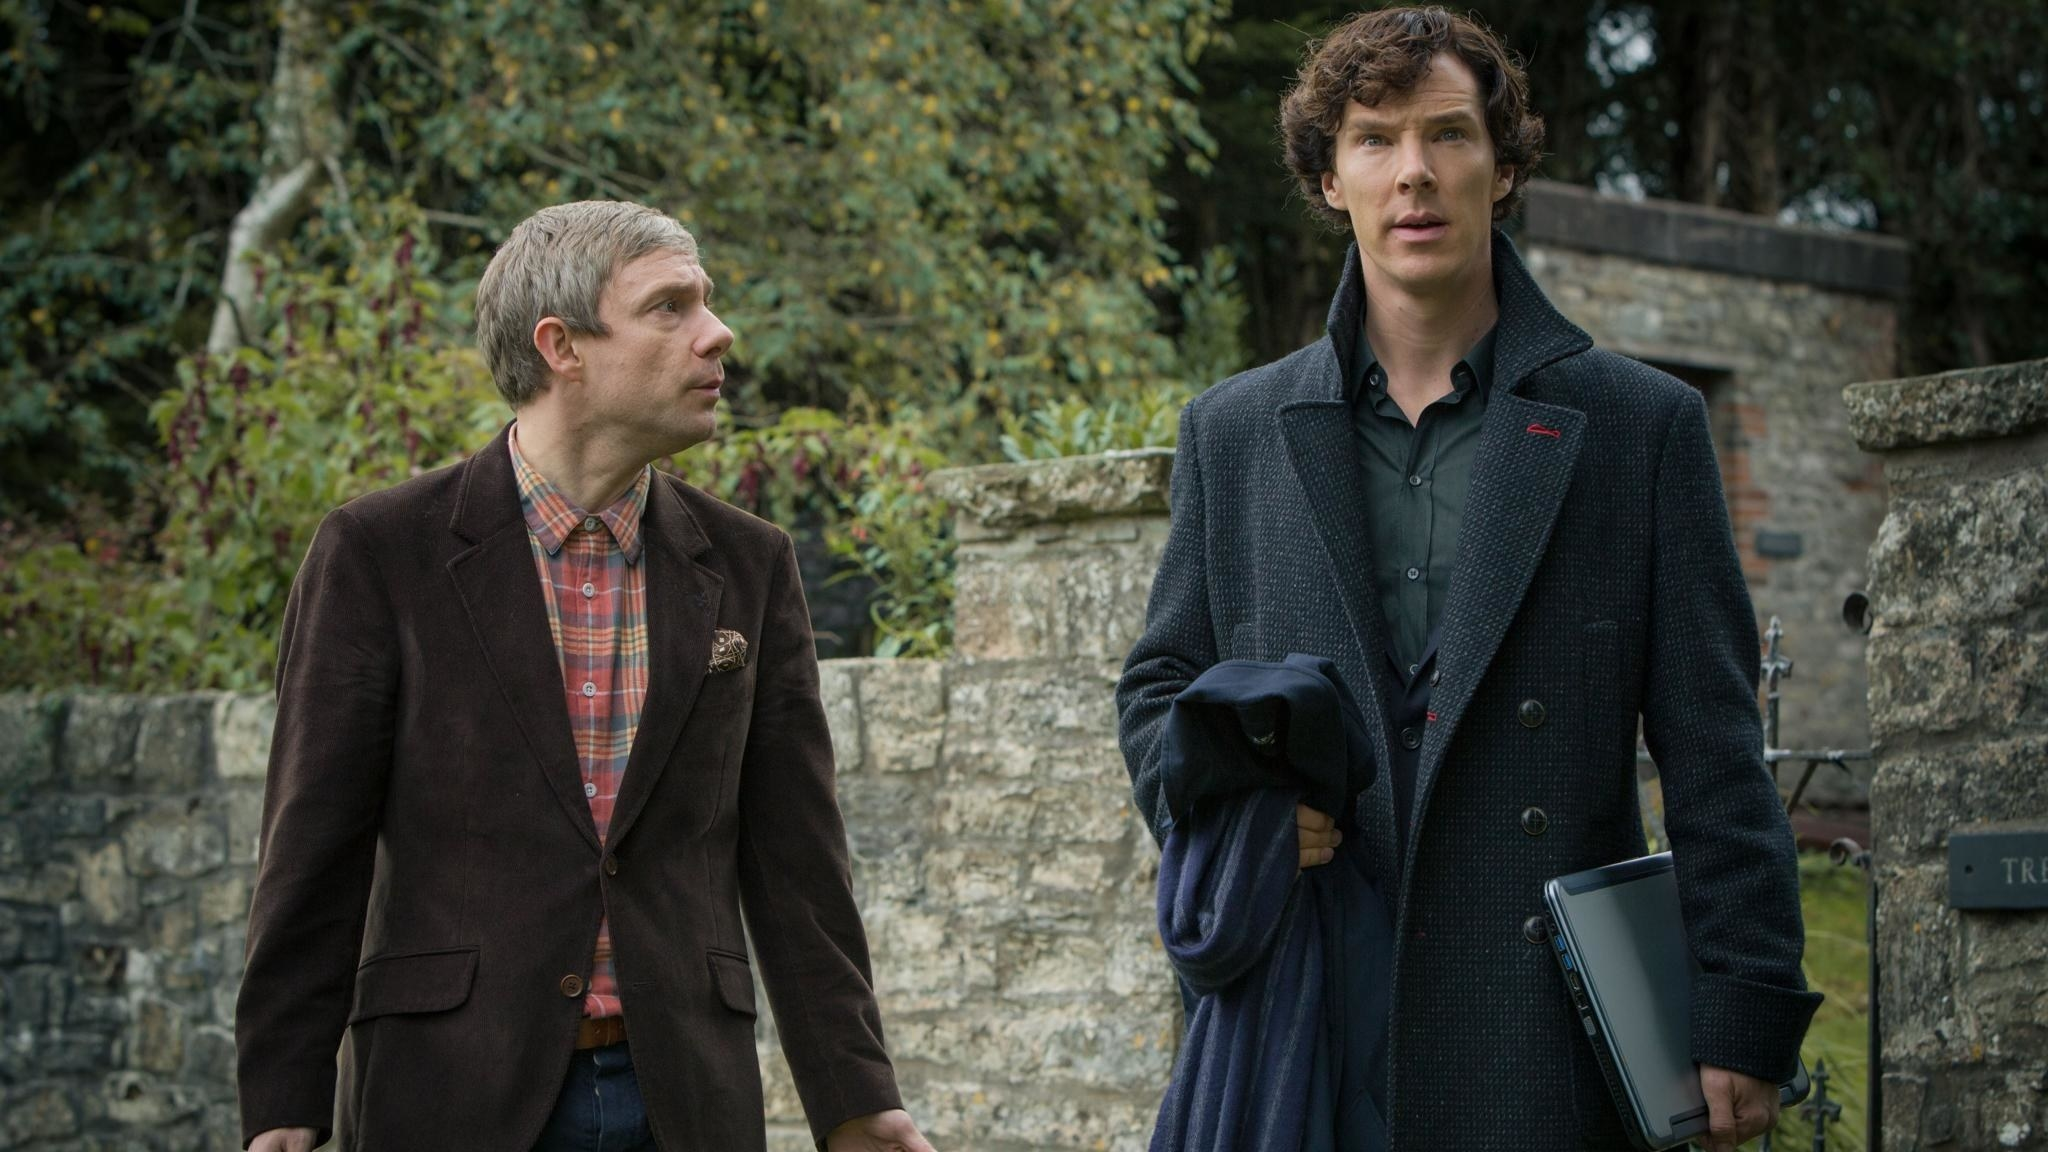 Sherlock Holmes and Watson walking and having a discussion